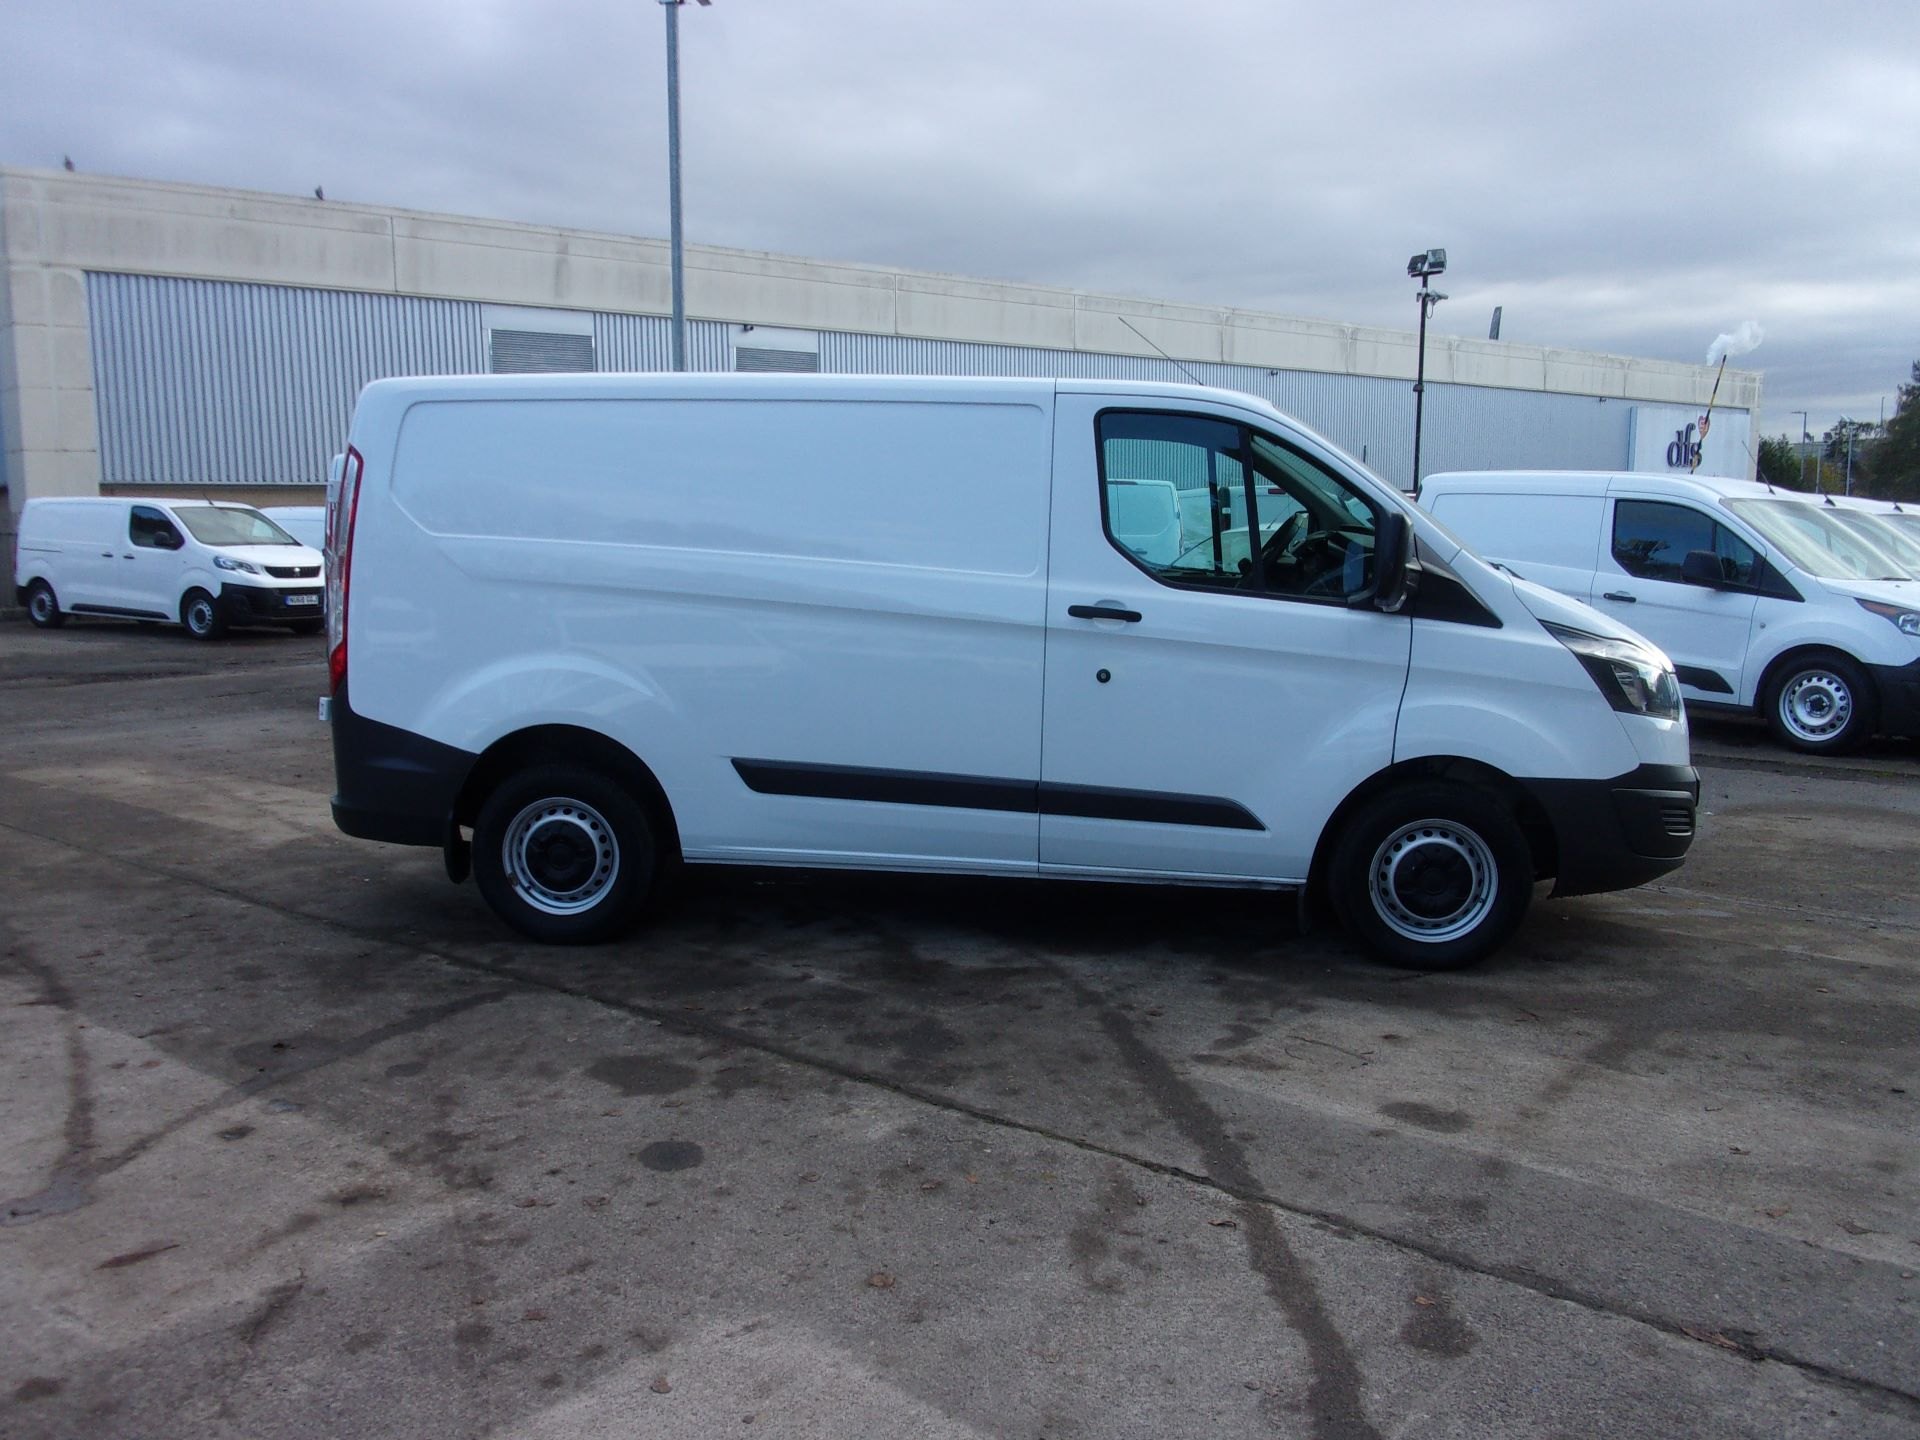 2017 Ford Transit Custom 290 L1 DIESEL FWD 2.0 TDCI 105PS LOW ROOF VAN EURO 6 *LIMITED TO 70MPH* (FP17UTM) Image 8